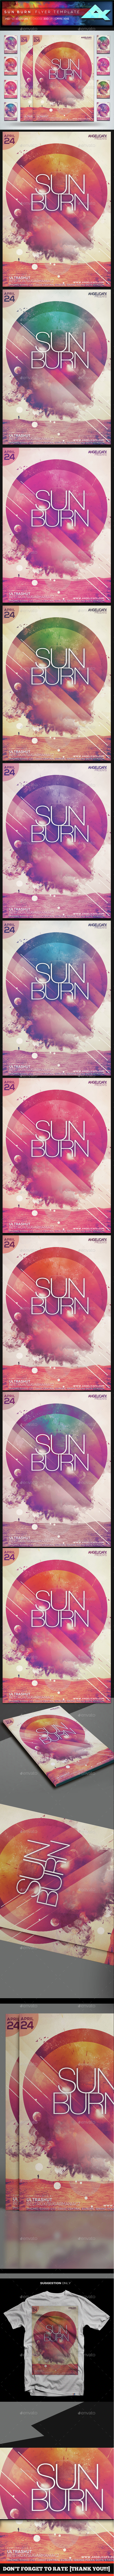 Sun Burn Flyer Template - Flyers Print Templates